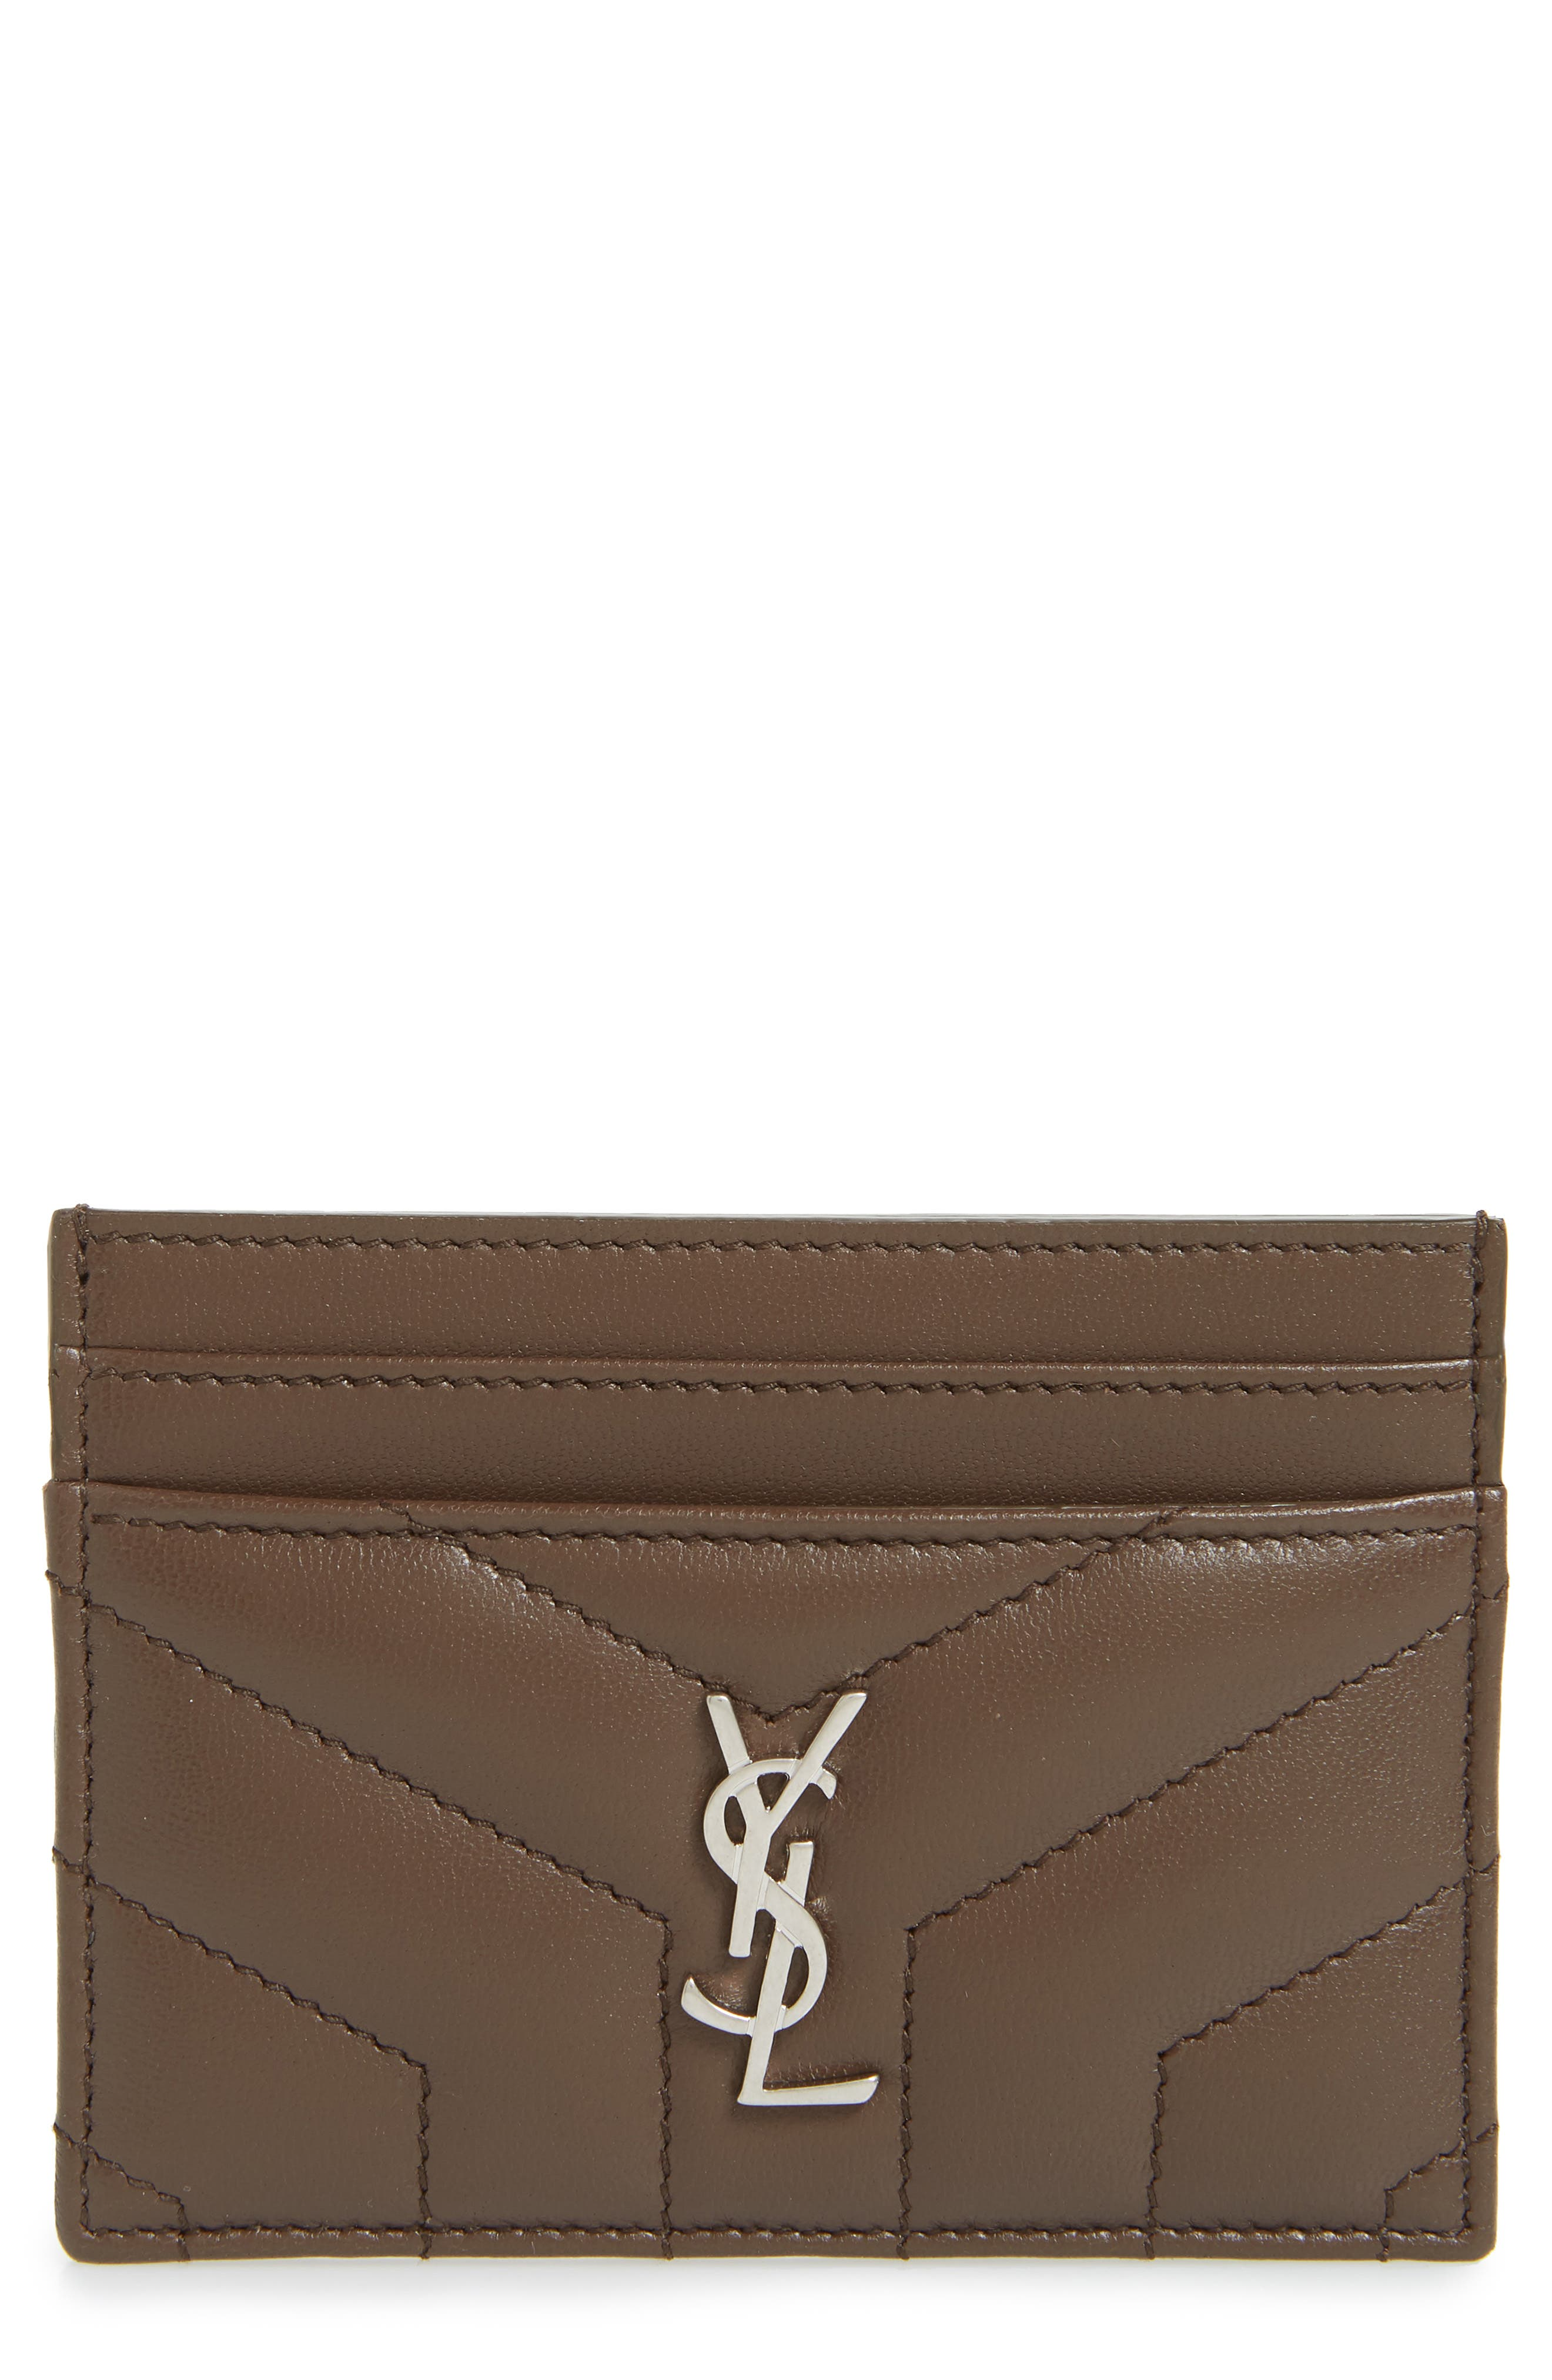 Loulou Monogram Quilted Leather Credit Card Case,                         Main,                         color, FAGGIO